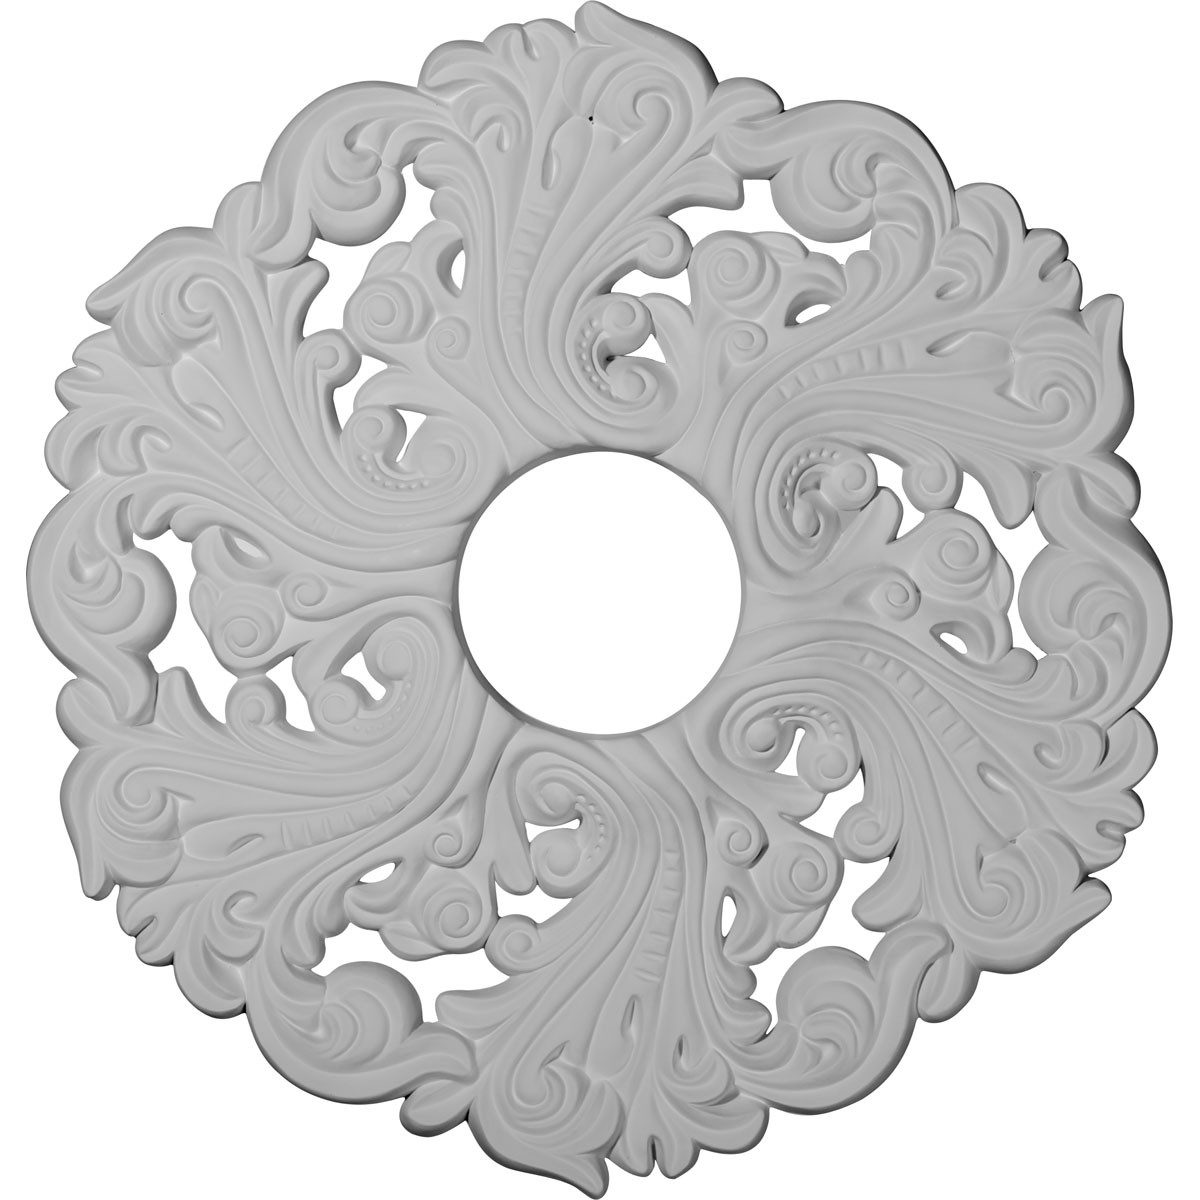 "EM-CM19OR - 19 5/8""OD x 4 3/4""ID x 1 3/4""P Orrington Ceiling Medallion (Fits Canopies up to 4 3/4"")"